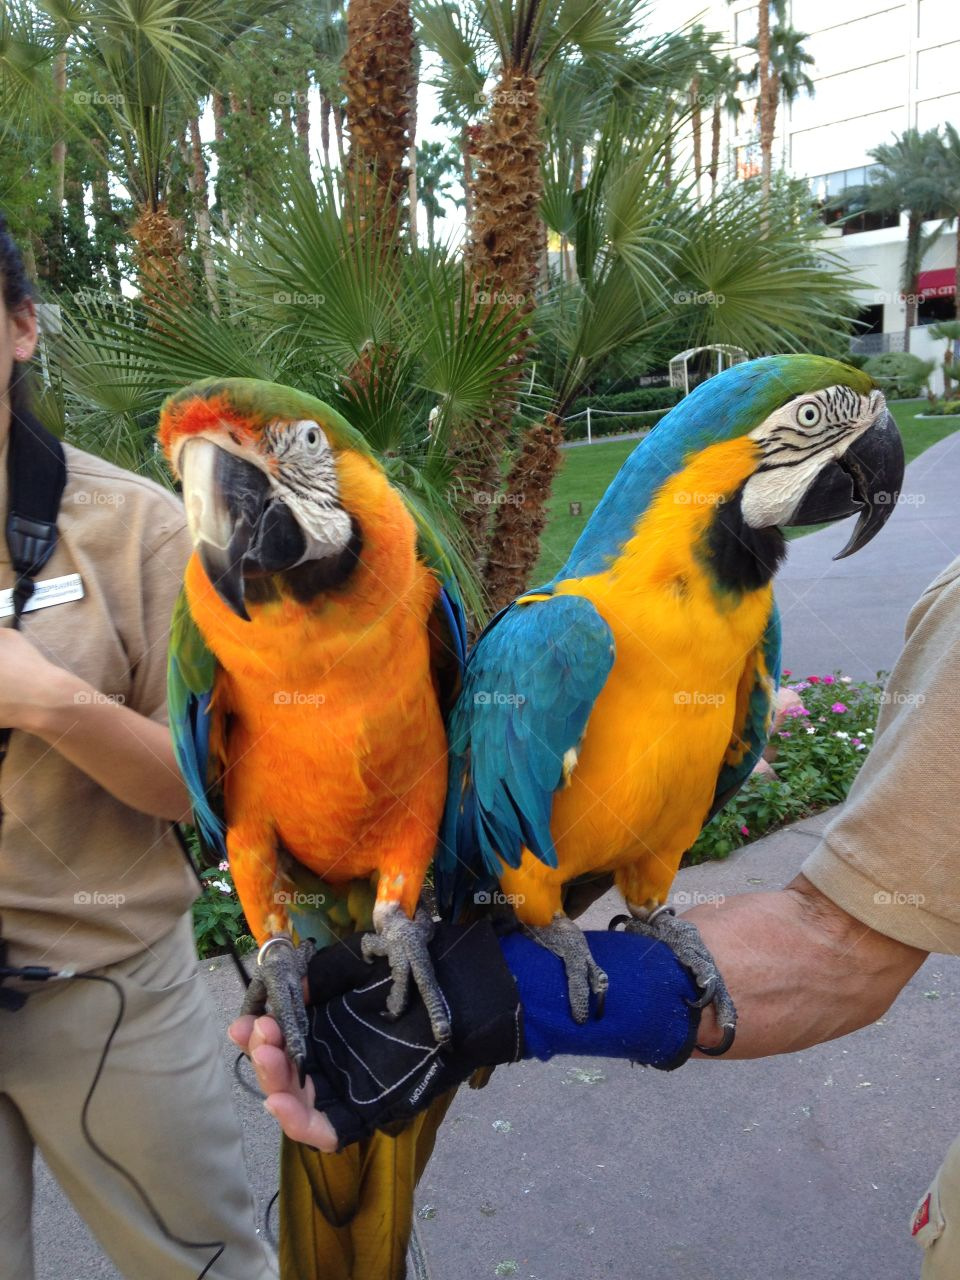 More than just yellow. Colorful parrots